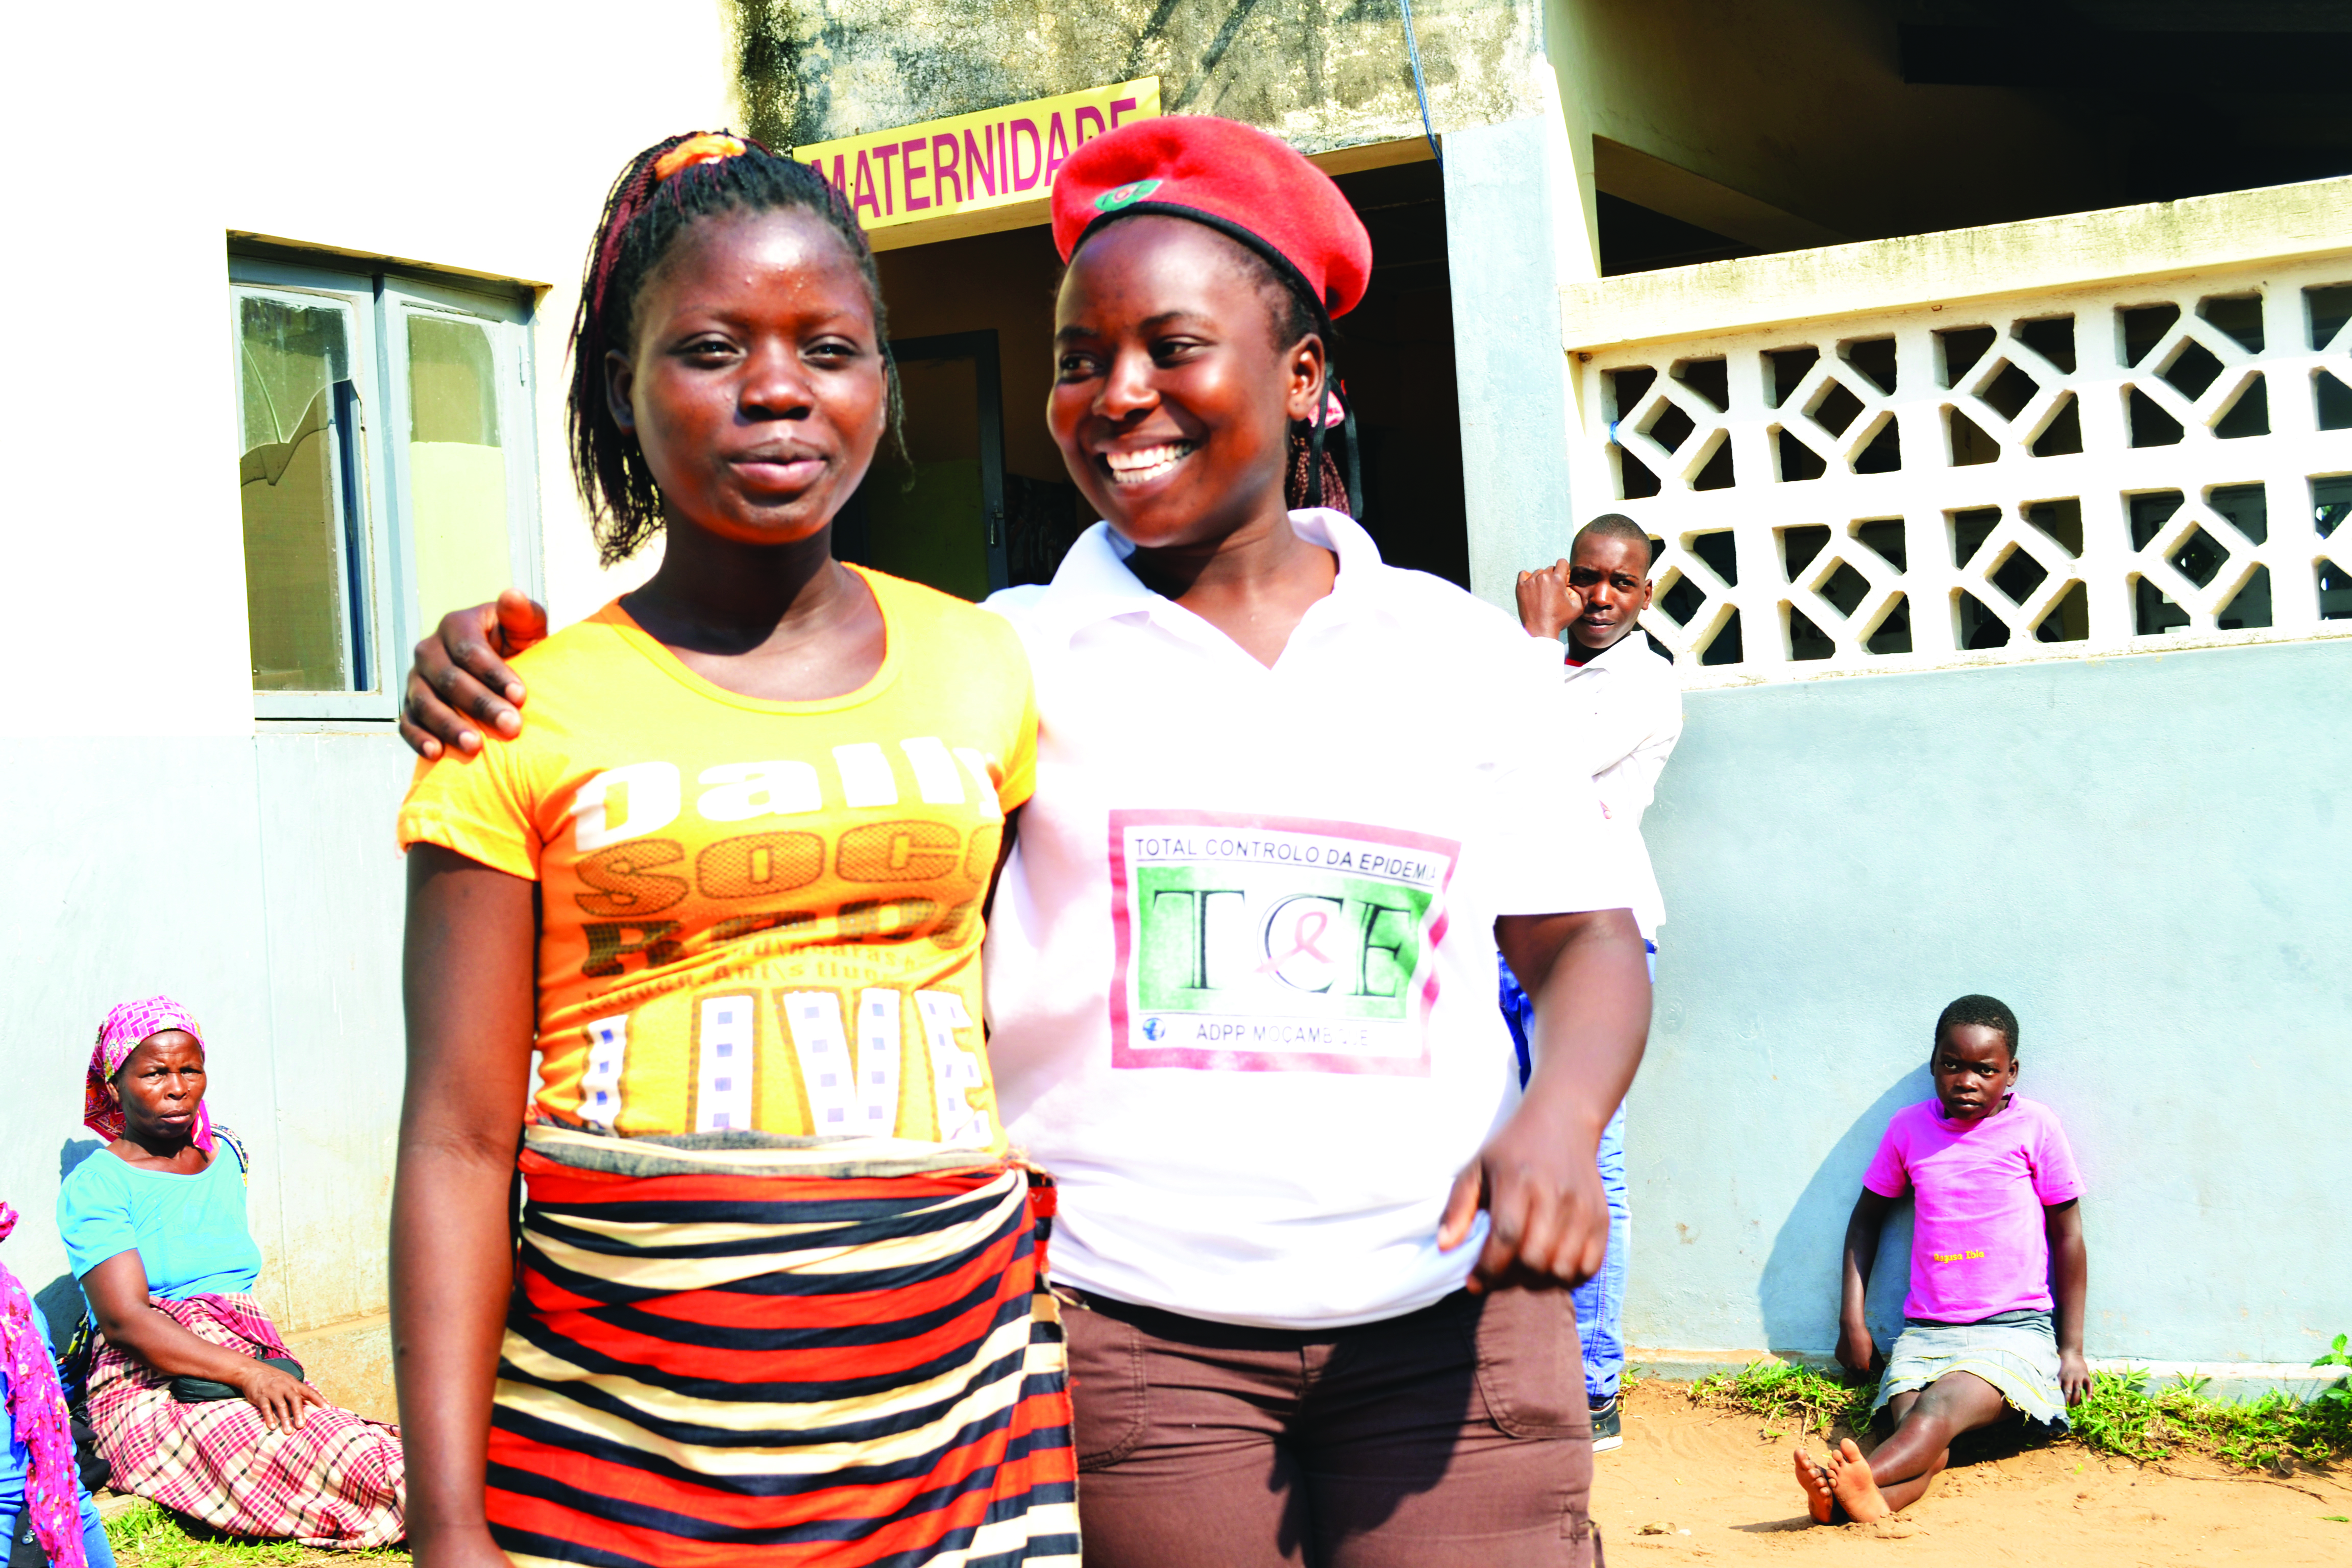 ADPP_Mozambique_-_pregnant_woman_who_was_reffered_for_ante-natal_care_HIV_testing.jpg